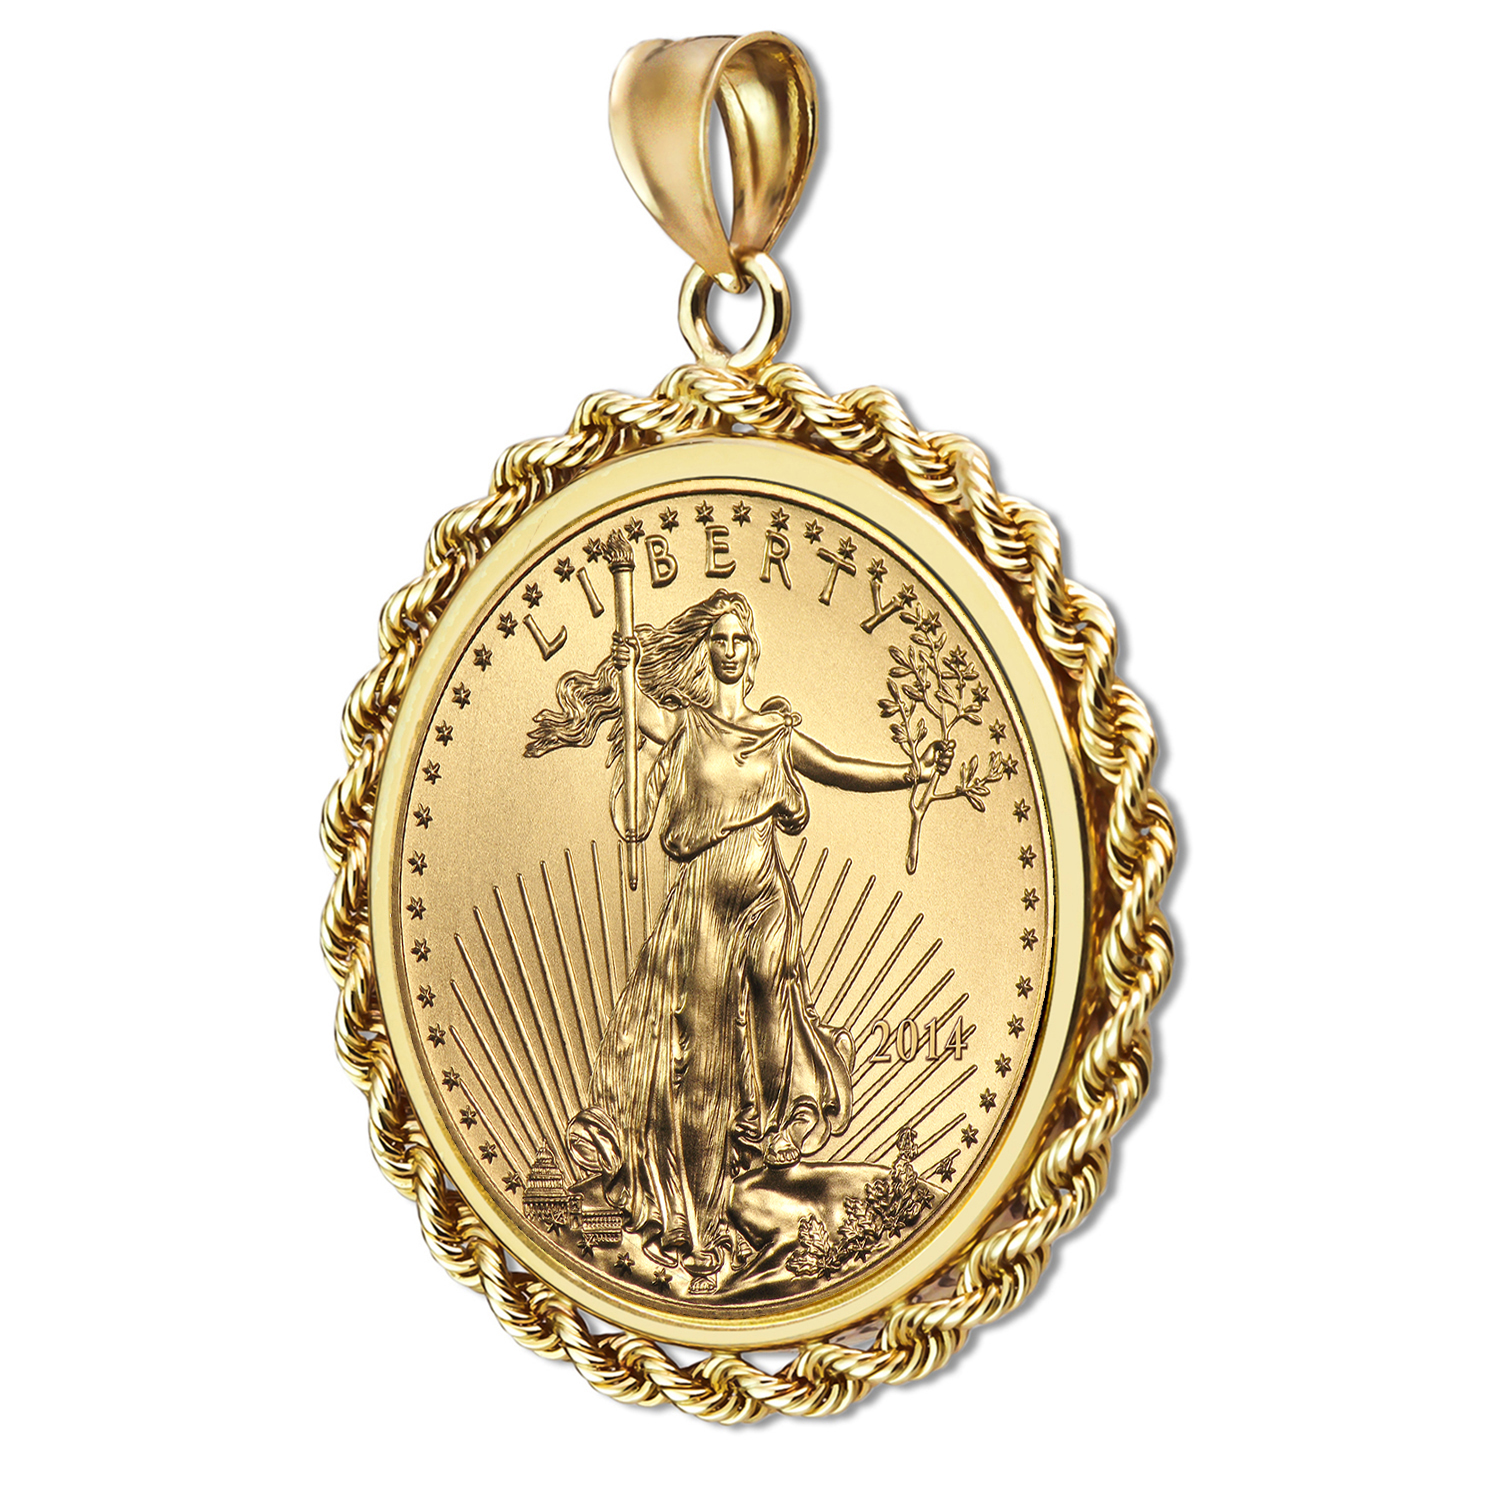 2014 1/10 oz Gold Eagle Pendant (Rope-Prong Bezel)